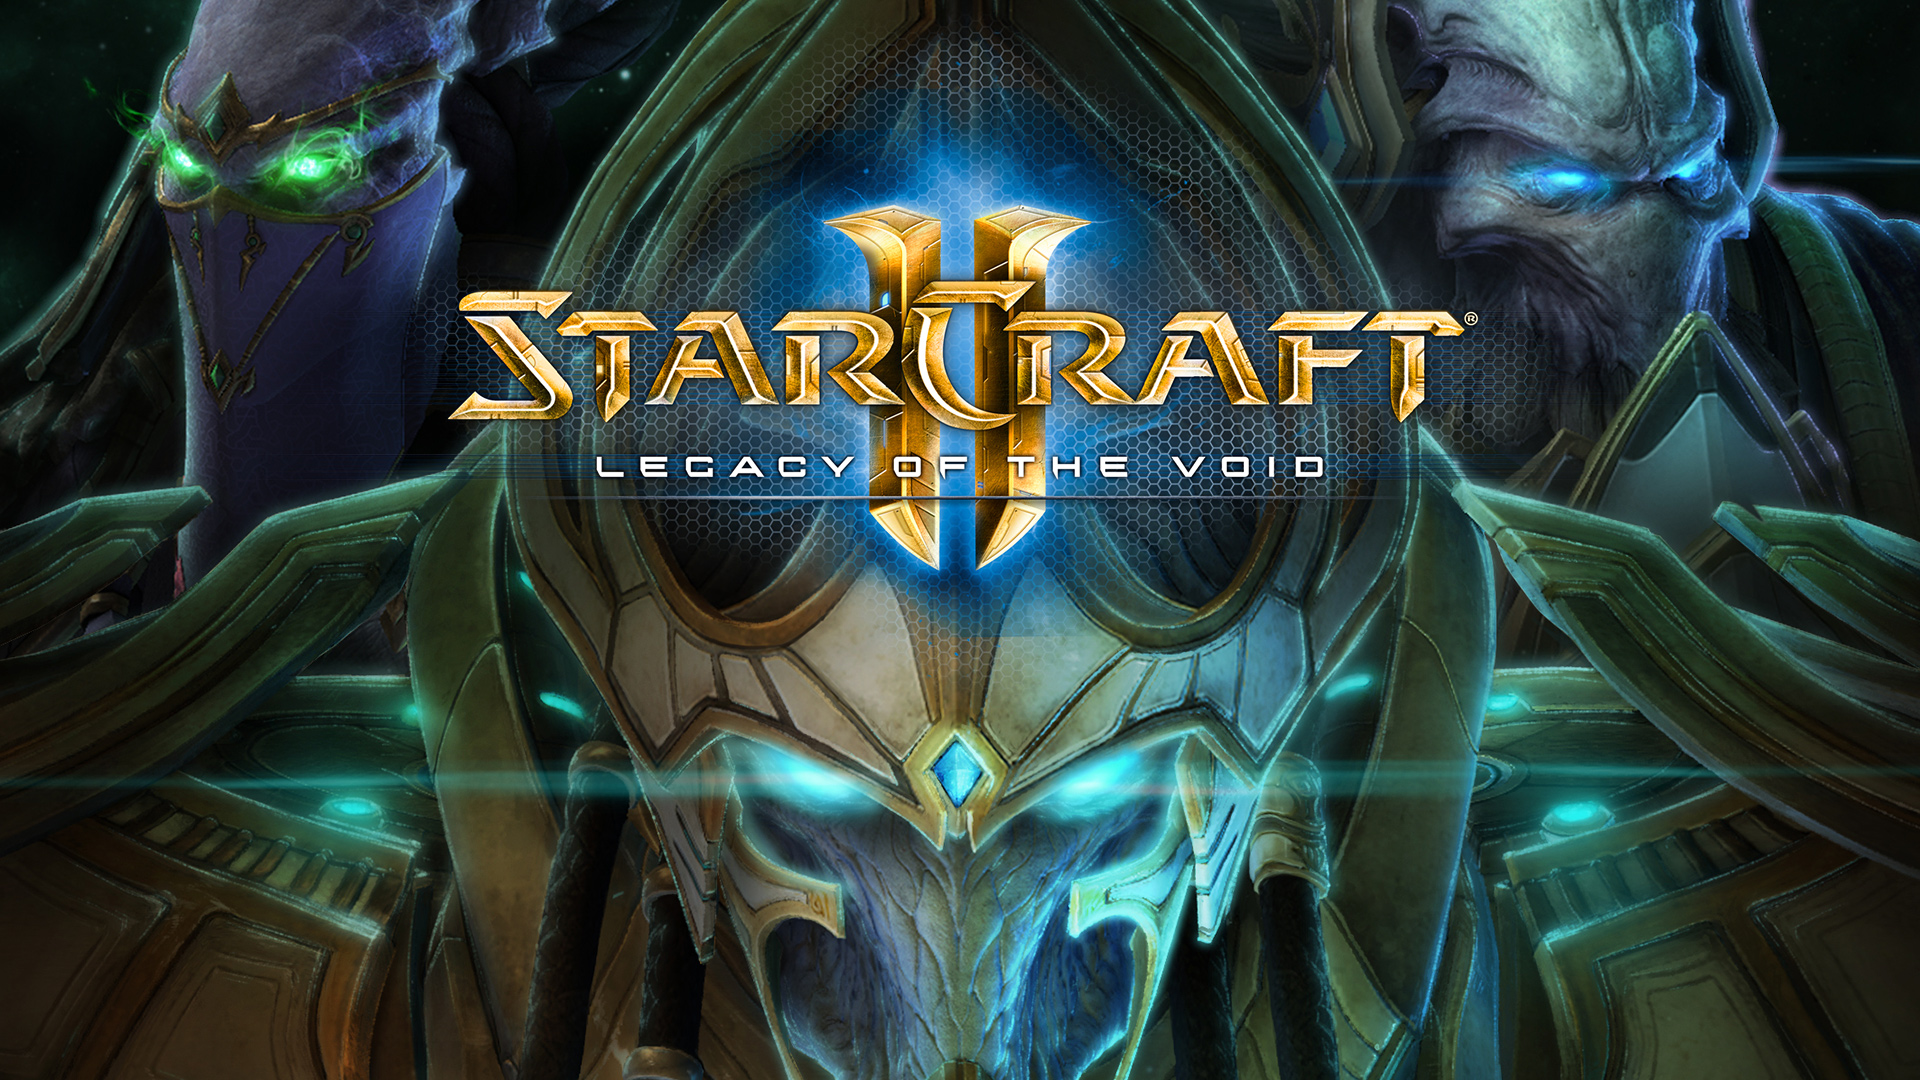 Starcraft II: Patch 3 0 Now Out, Paves the Way for Legacy of